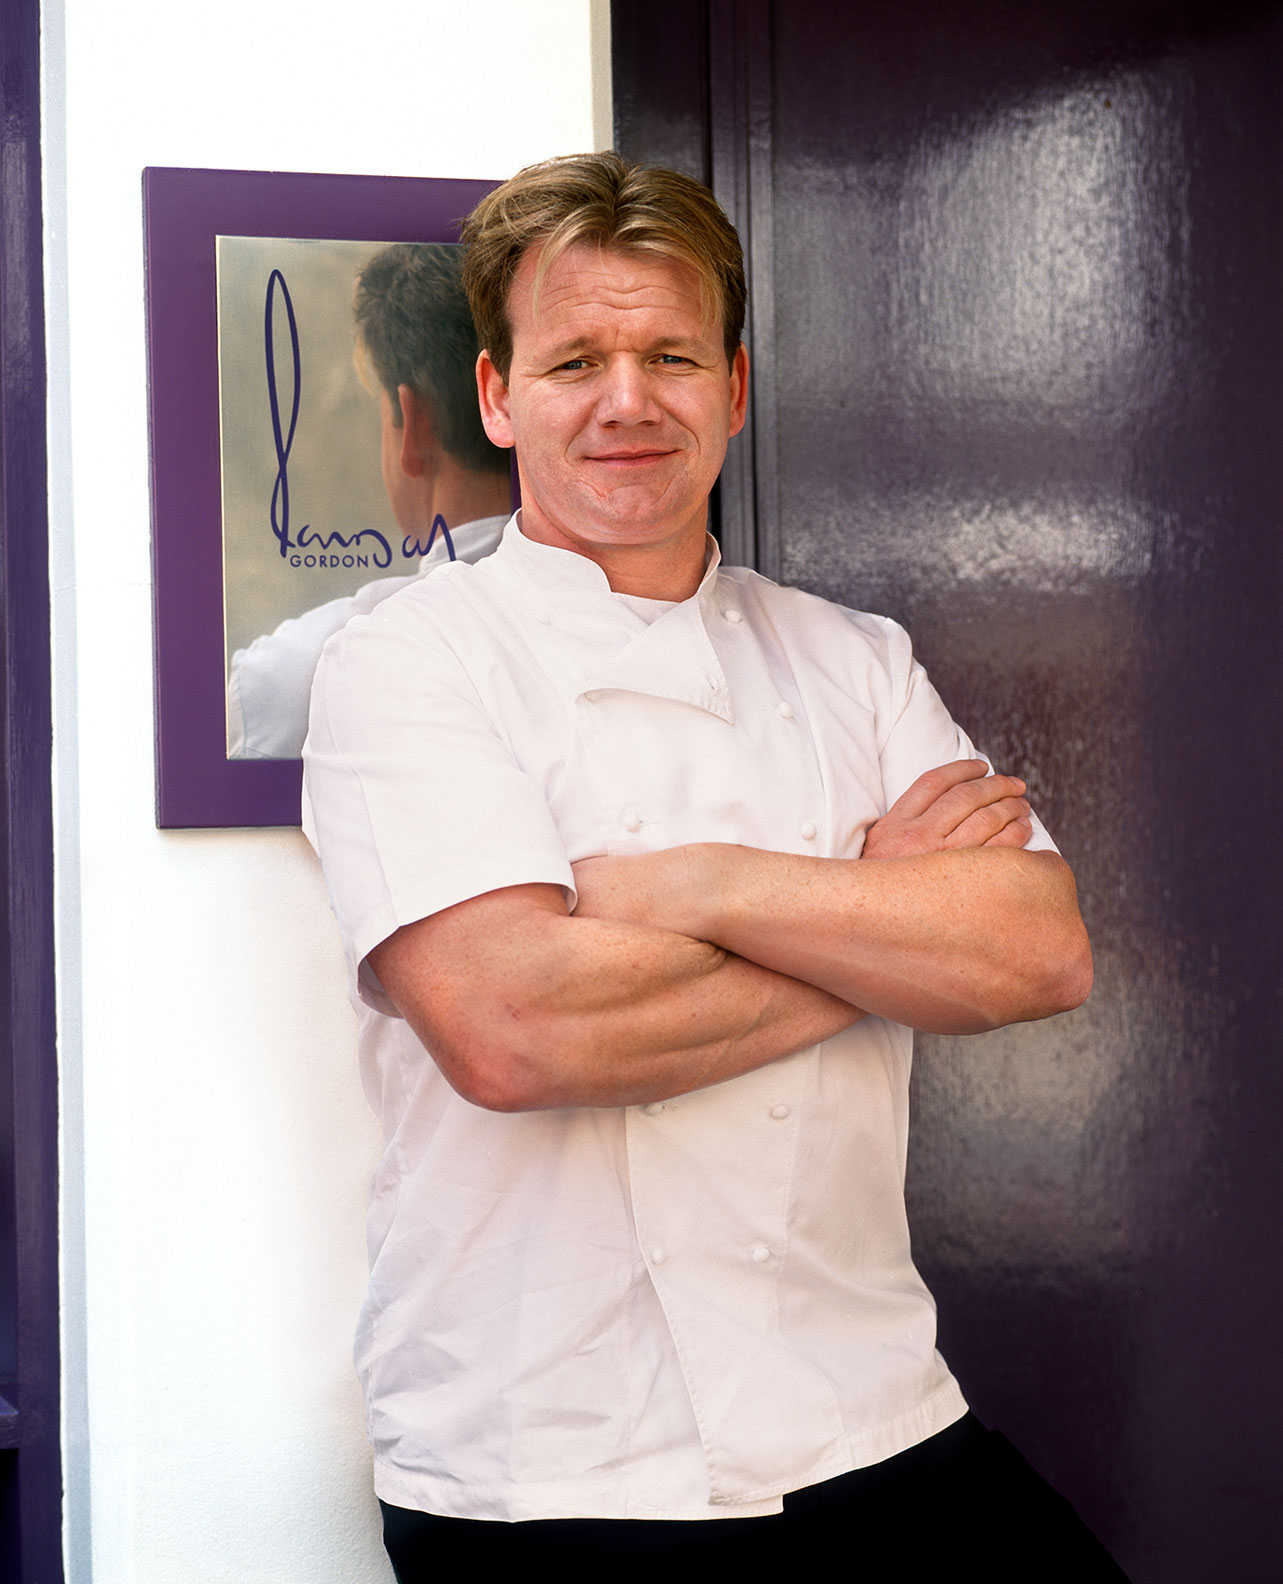 Gordon-Ramsey